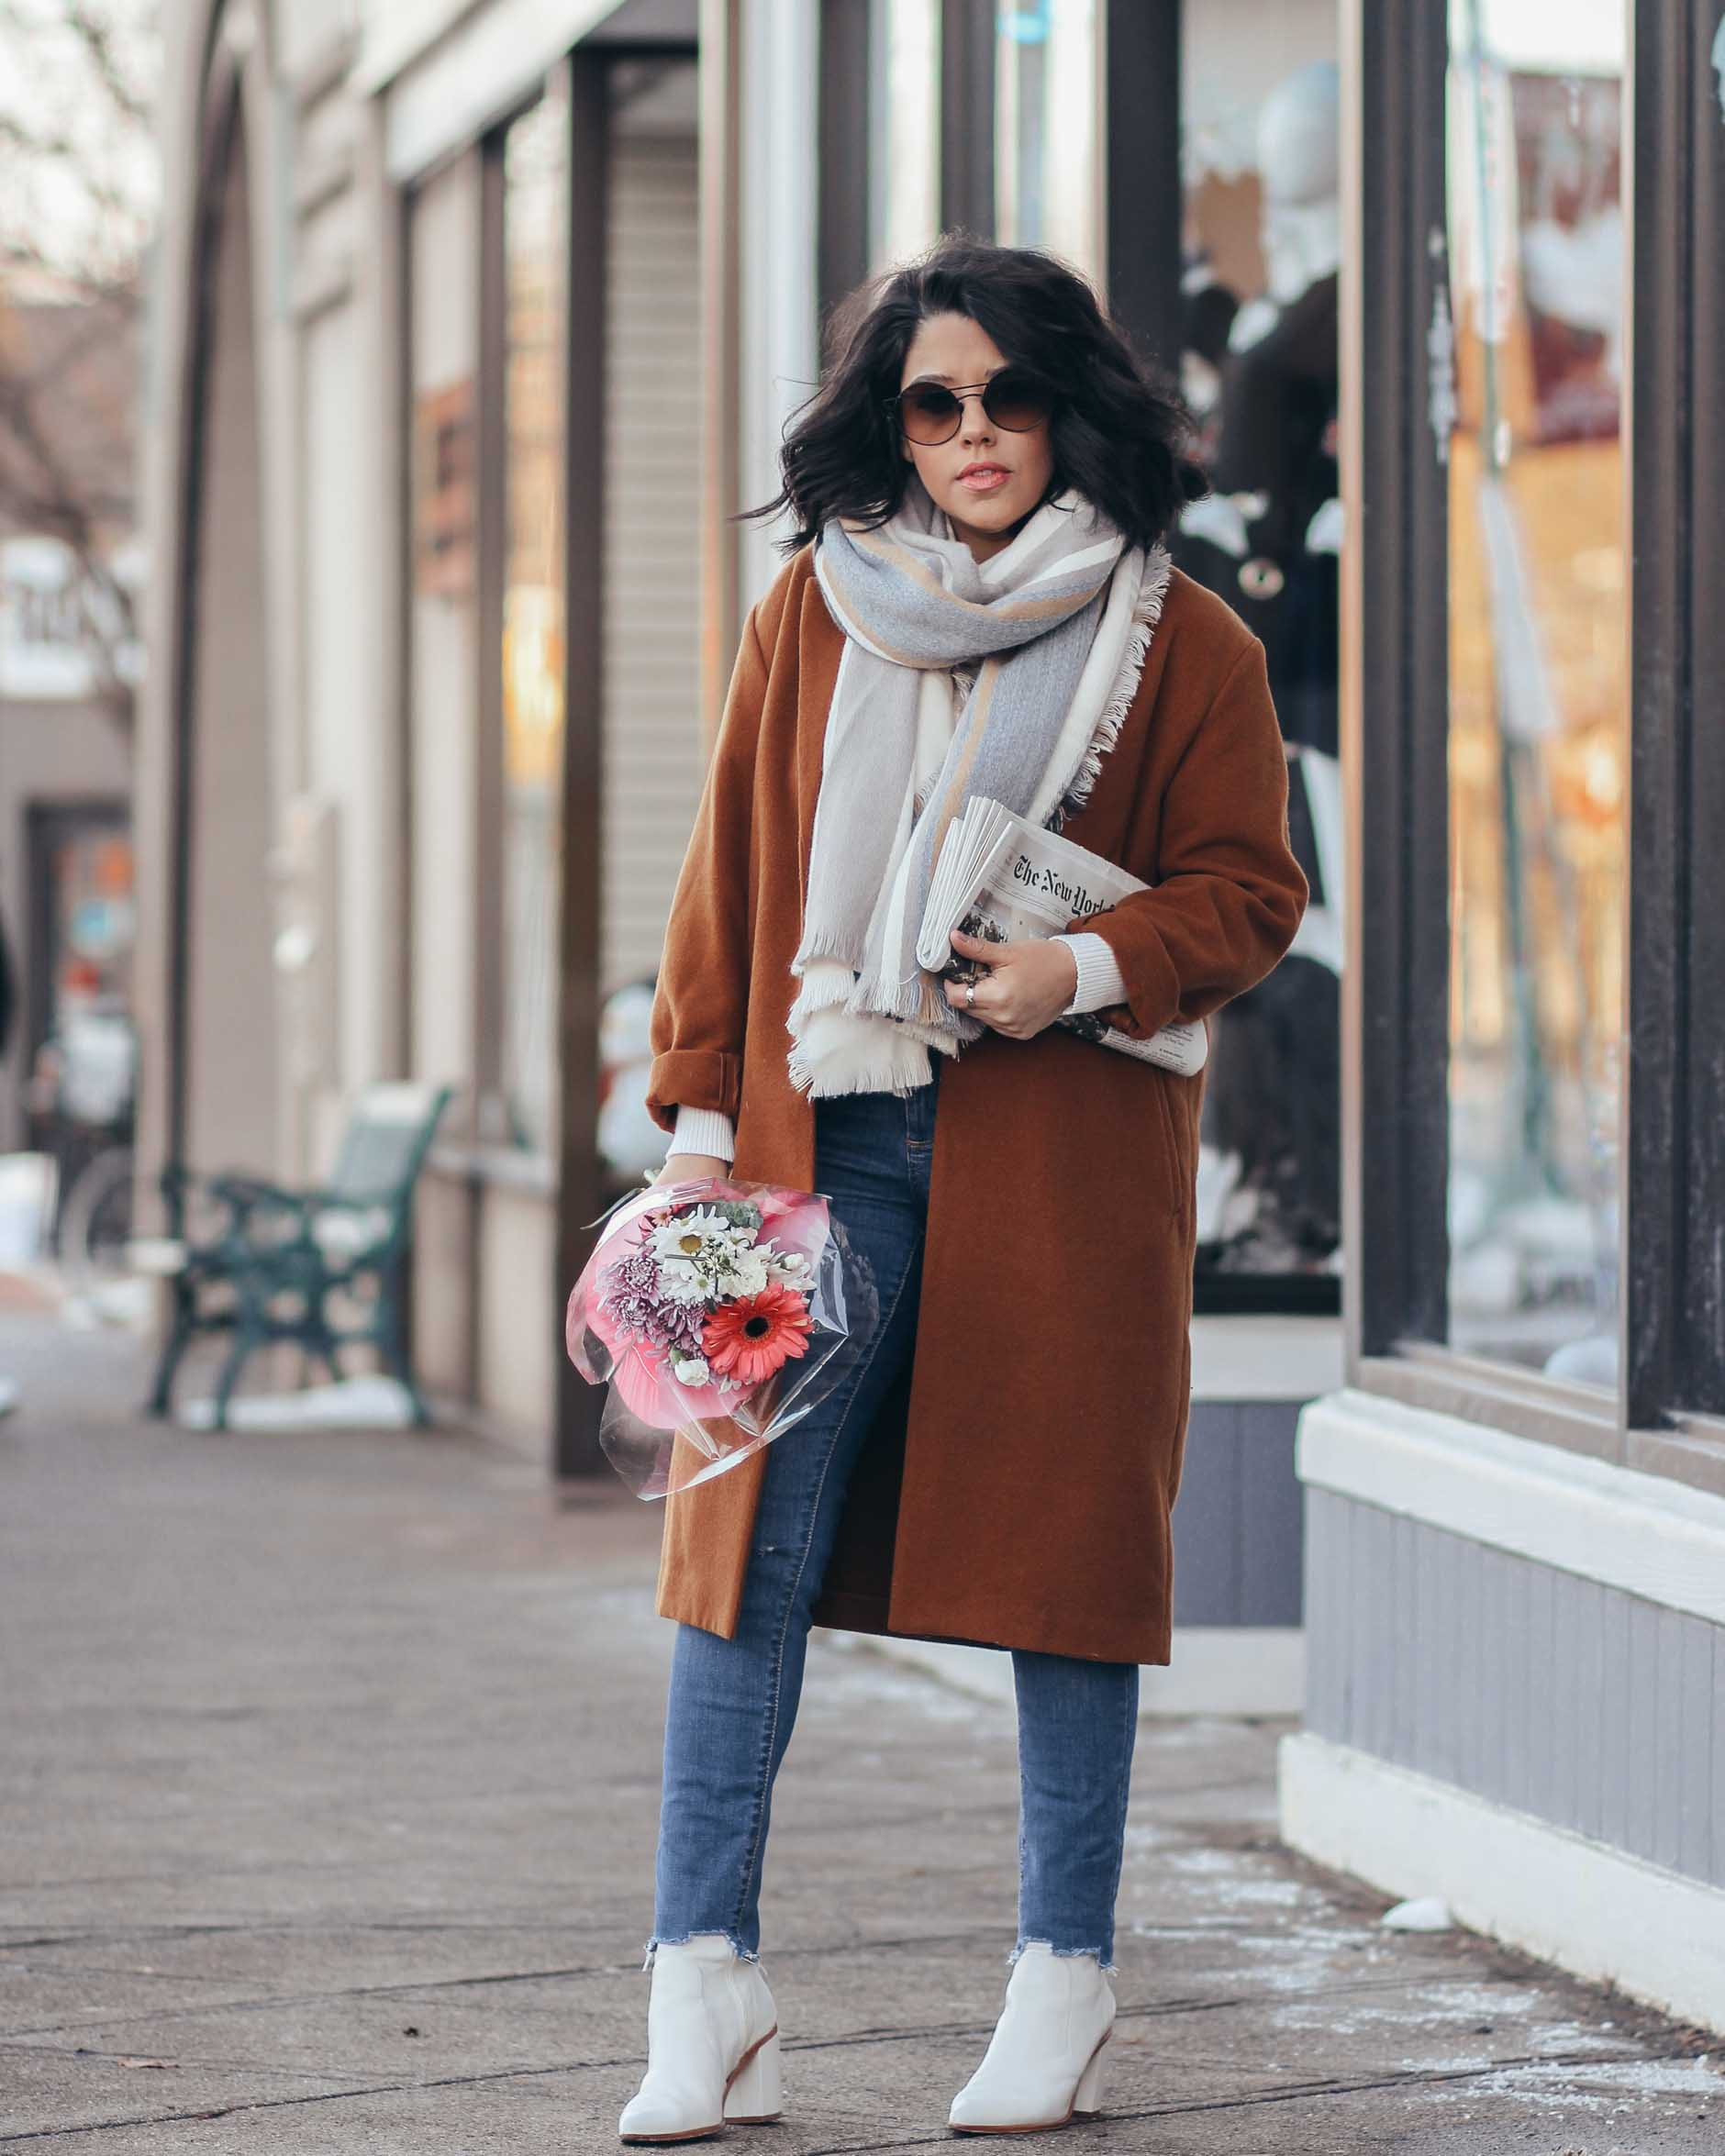 lifestyle blogger naty michele wearing camel coat with flowers and newspaper